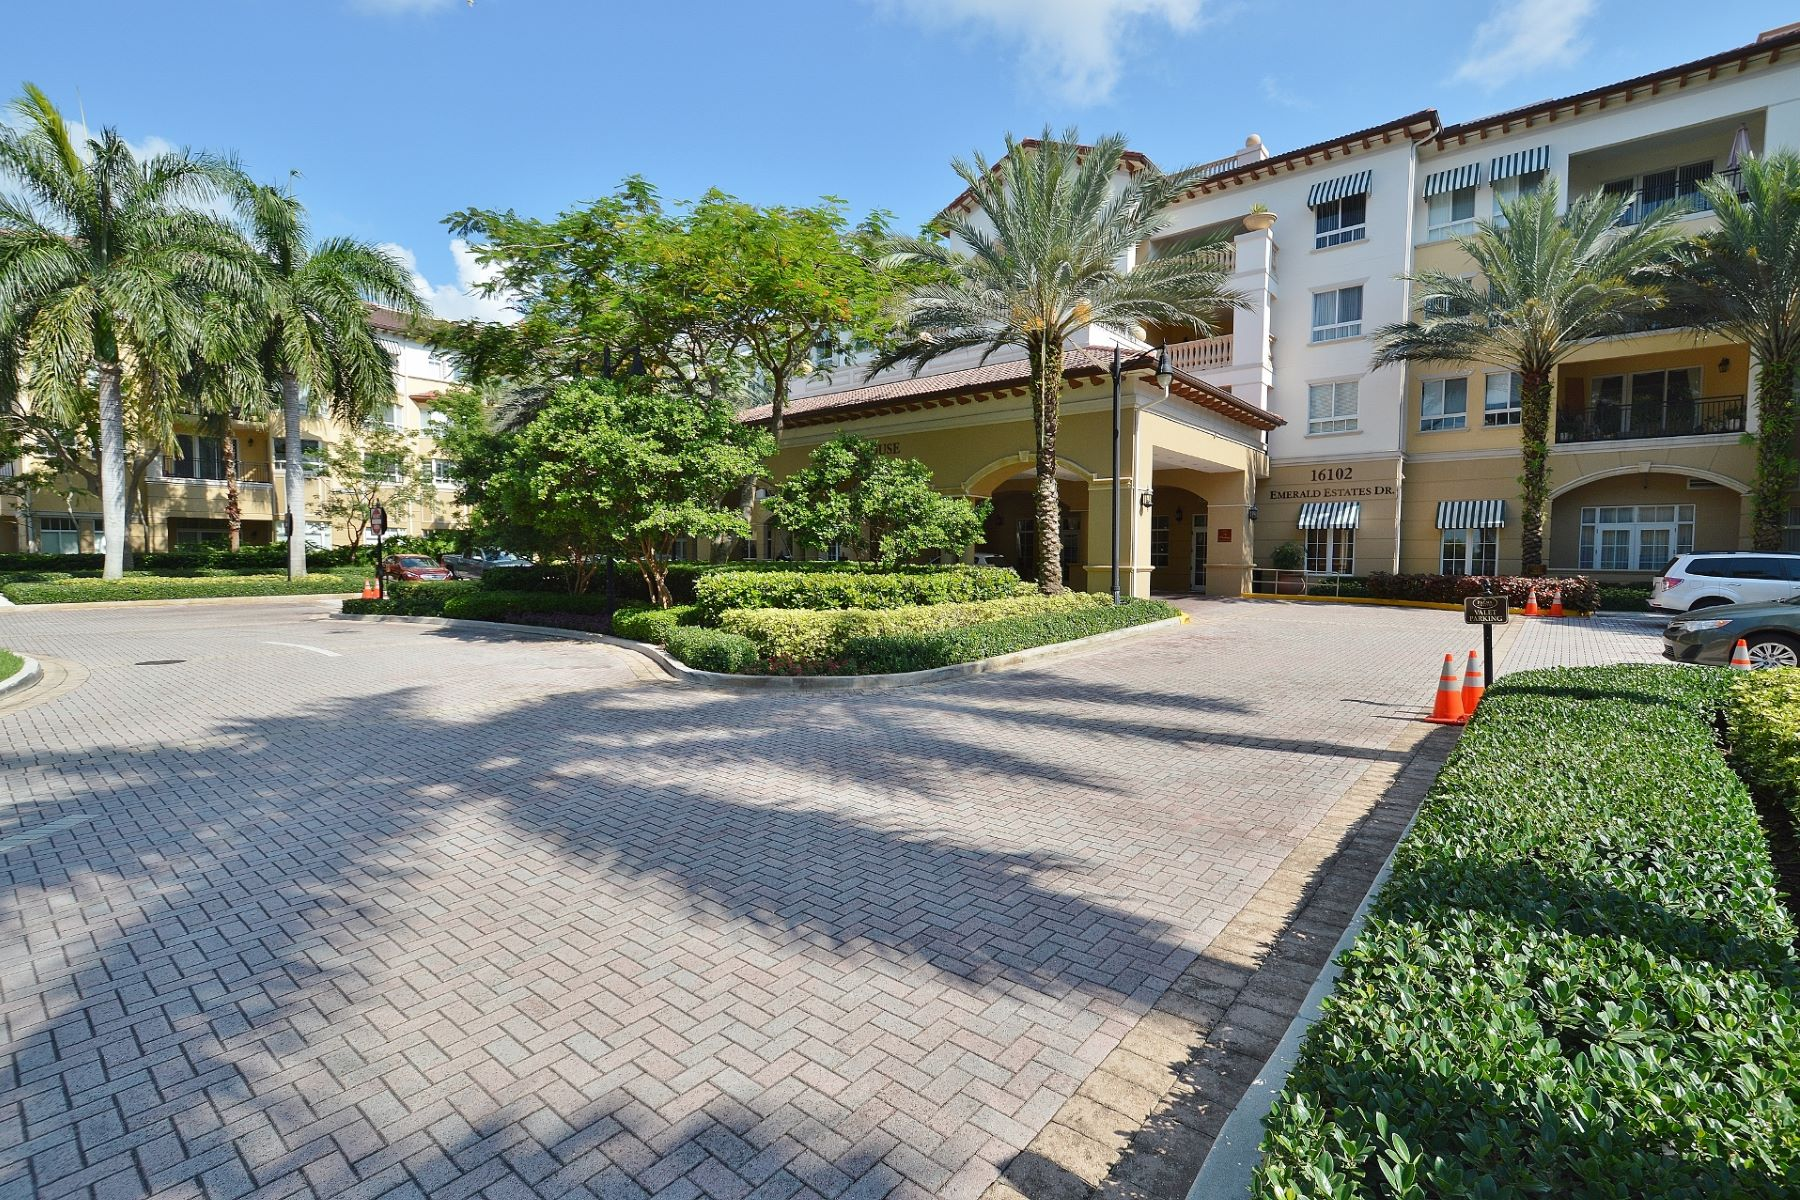 Condominium for Sale at 16102 Emerald Estates Dr #402 16102 Emerald Estates Dr 402 Weston, Florida, 33331 United States